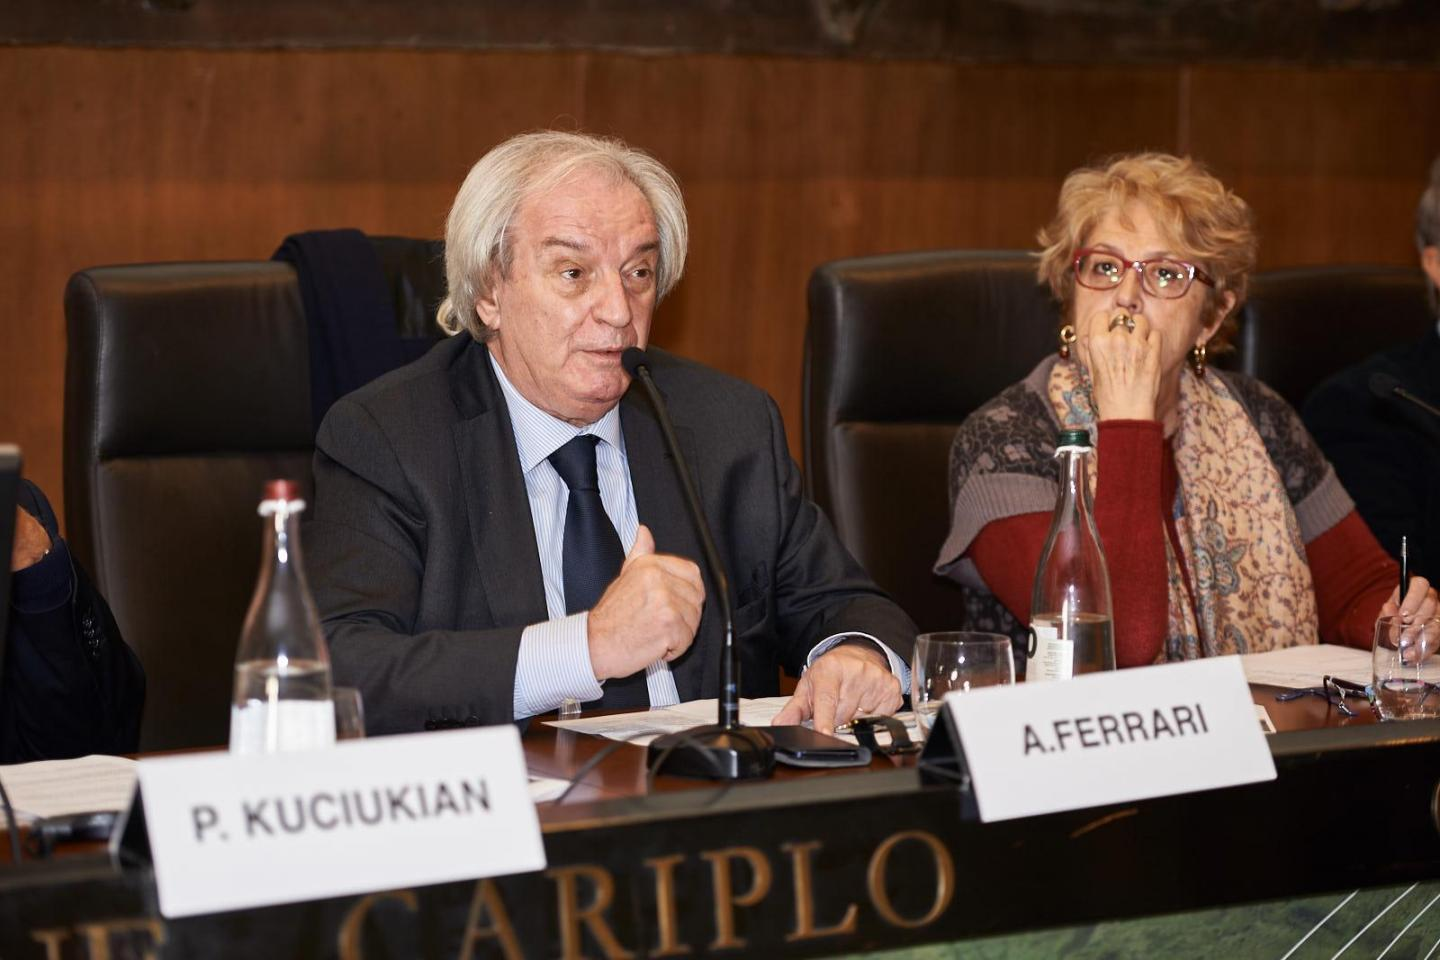 Antonio Ferrari, editorialist of Corriere della Sera, moderate the session